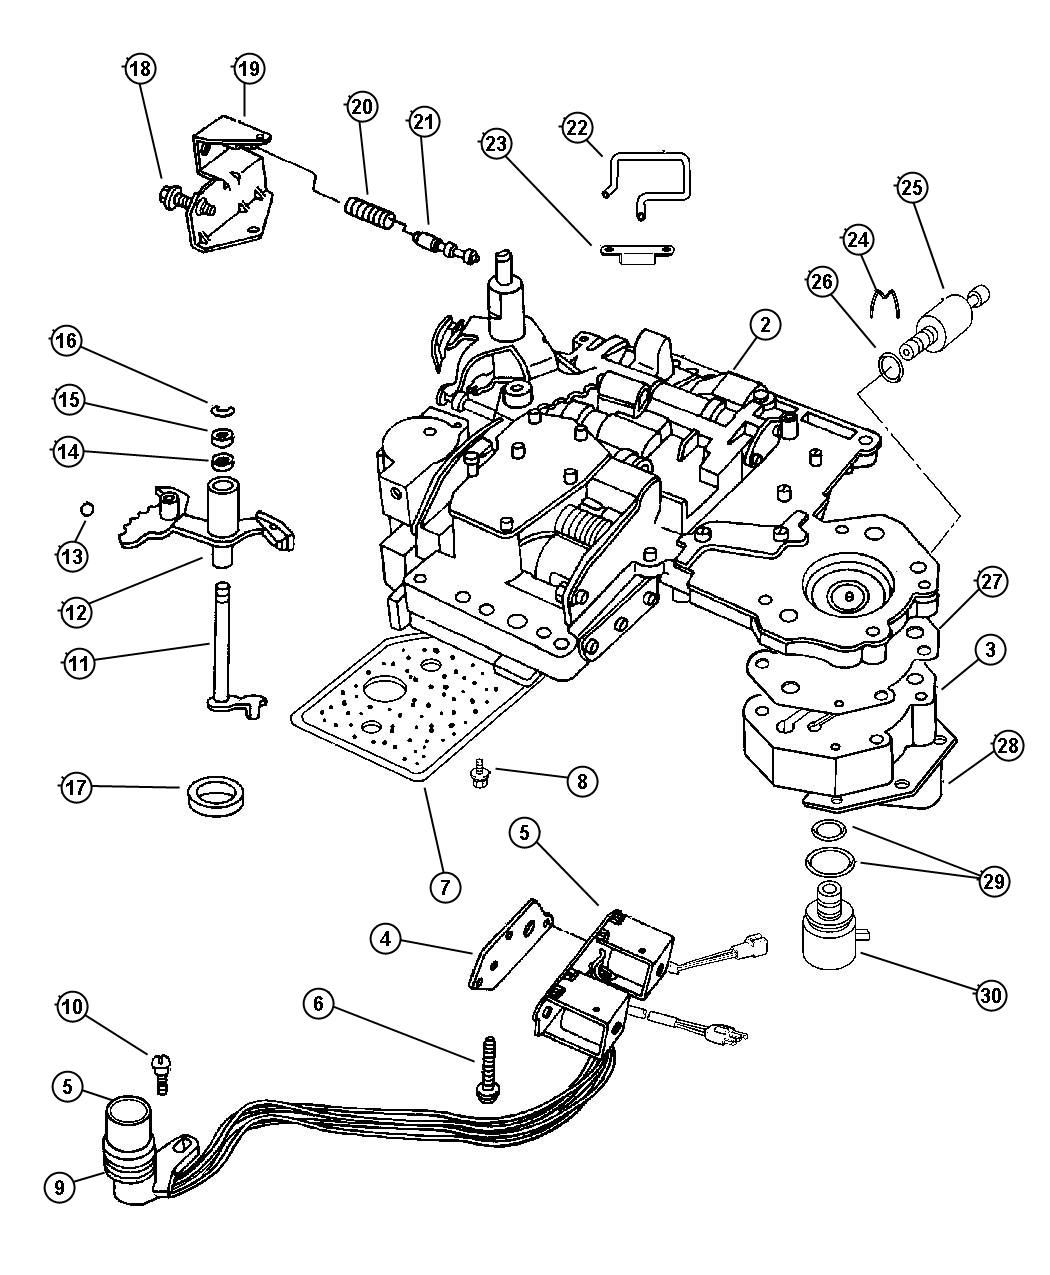 hight resolution of 2001 dodge ram transmission wiring harnes